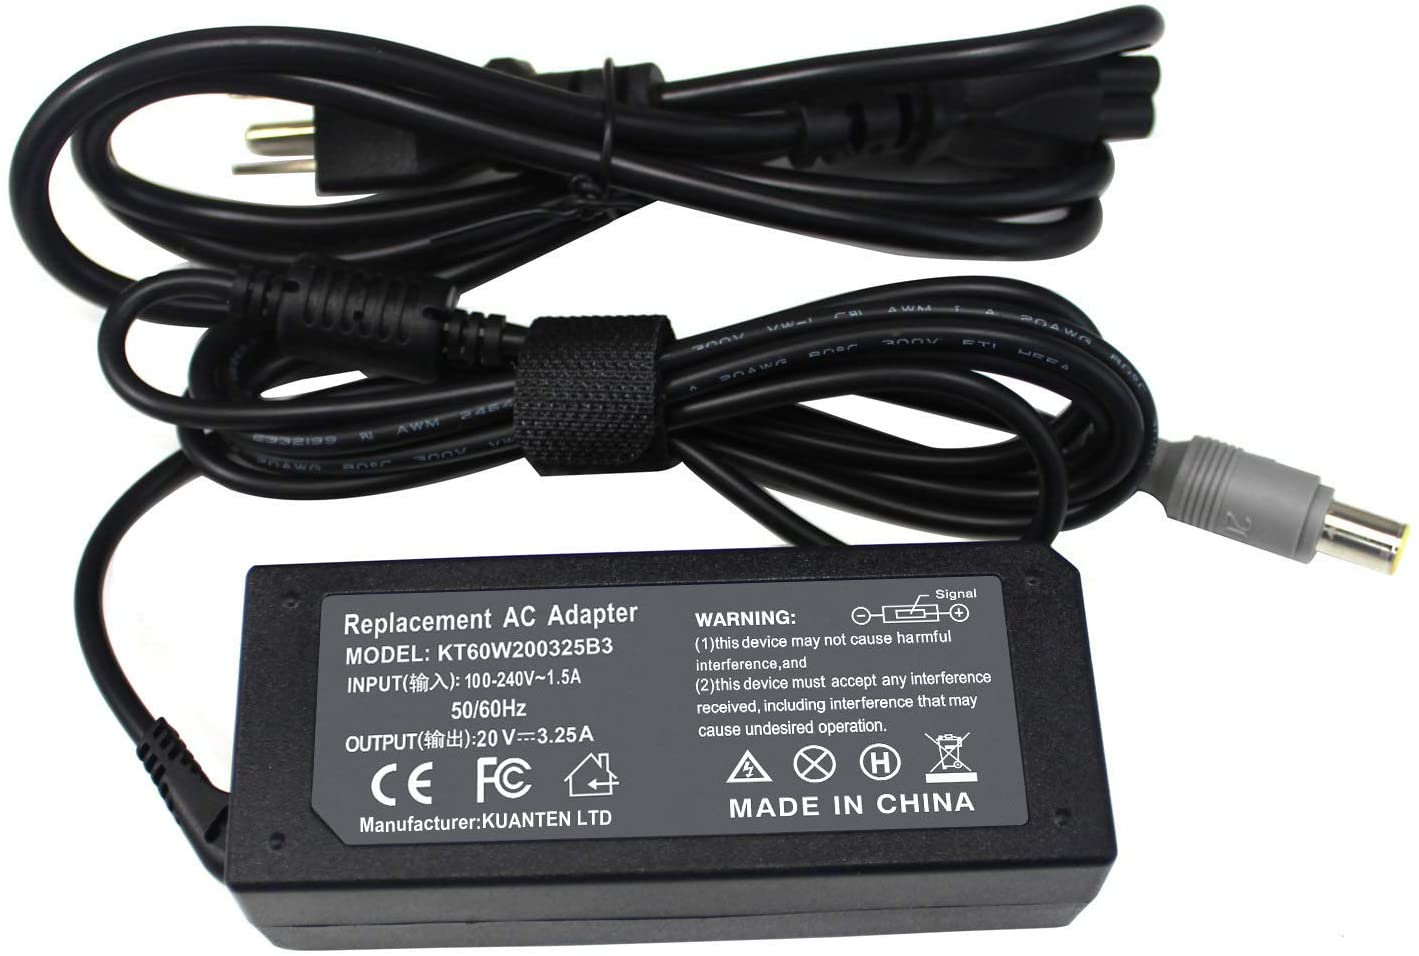 Gomaty 65W AC Adapter Charger for Lenovo Thinkpad Edge 15 E40 E420 E430 E520 E525 E530 E535 E545 S230U SL500 SL510 X120e X130e X131e X140E X200 X201 X220 X230 X230t X300 X60